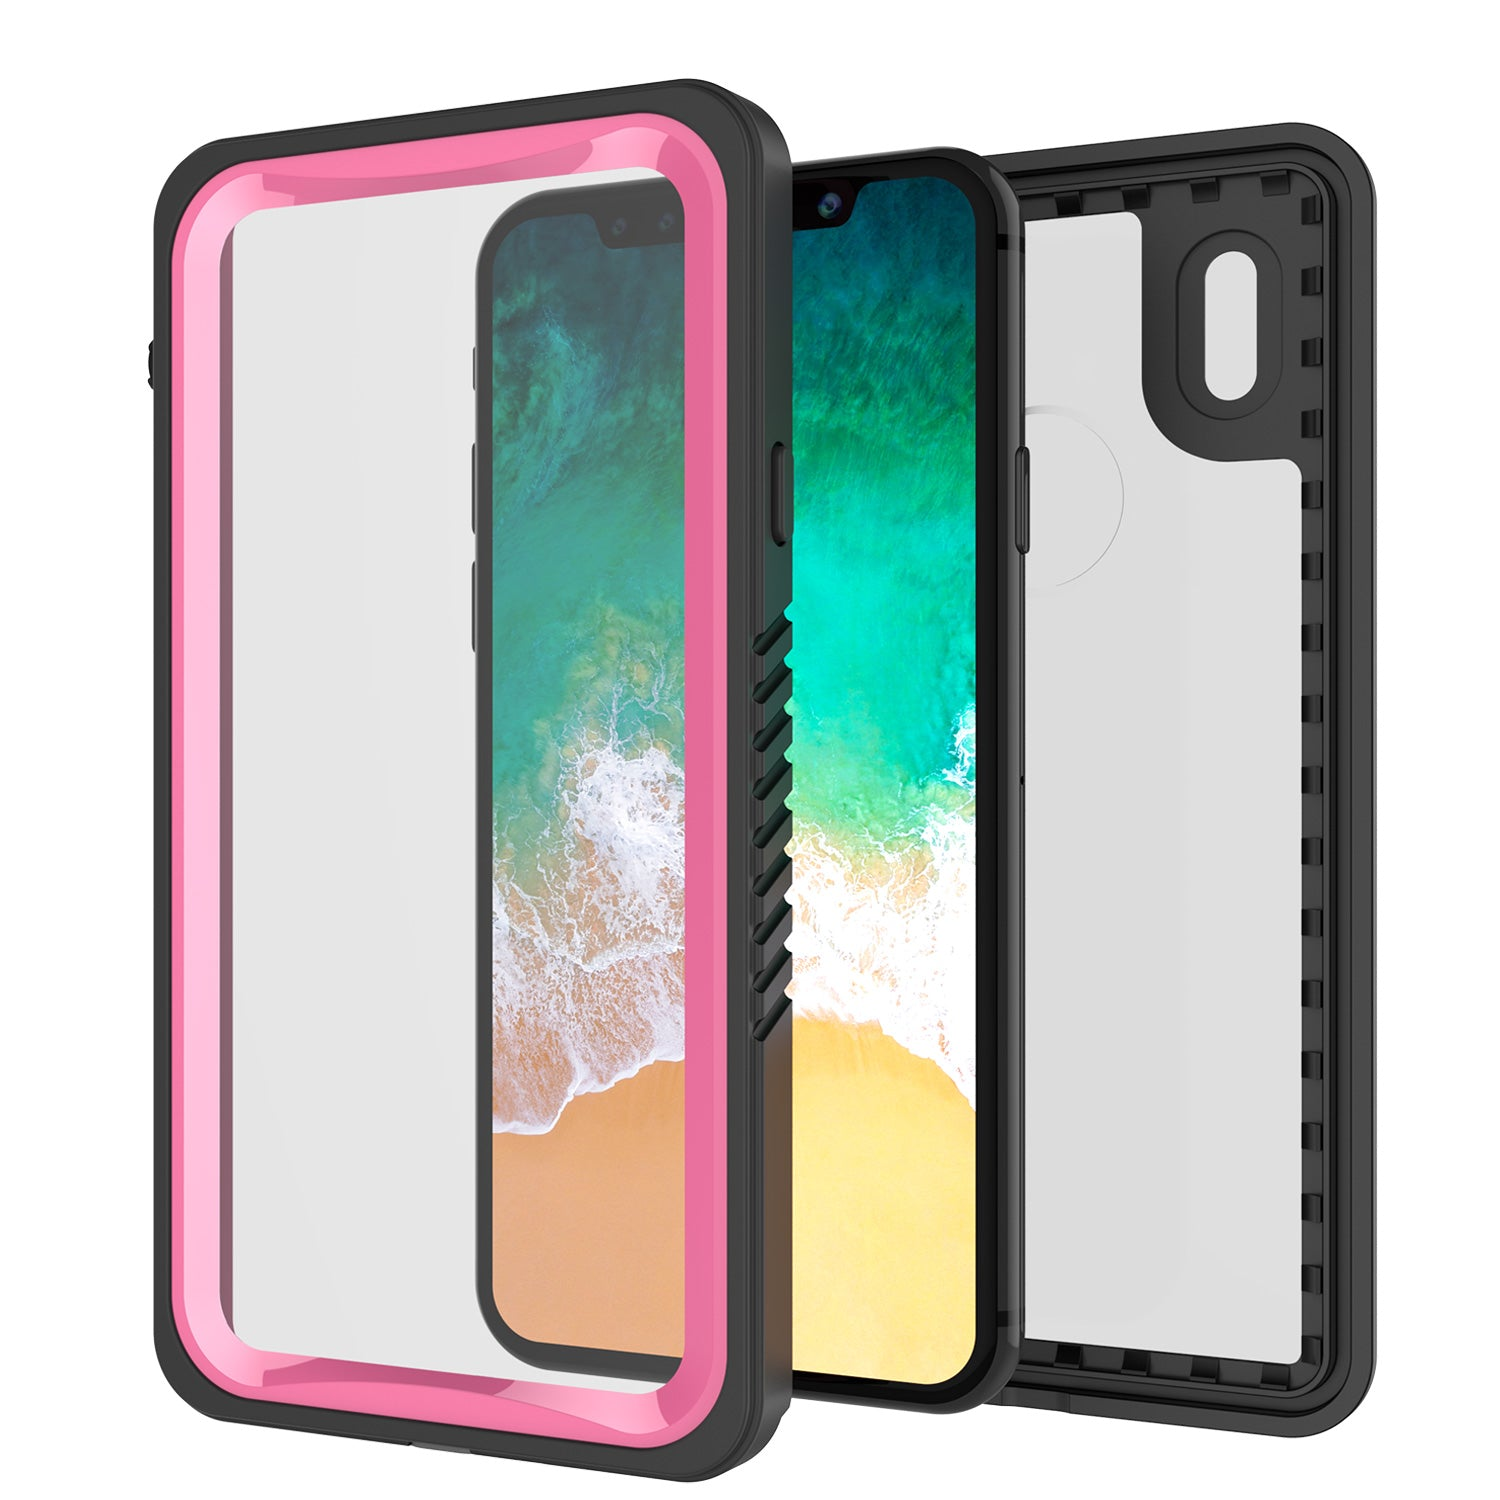 iPhone X Case, Punkcase [Extreme Series] [Slim Fit] [IP68 Certified] [Pink]